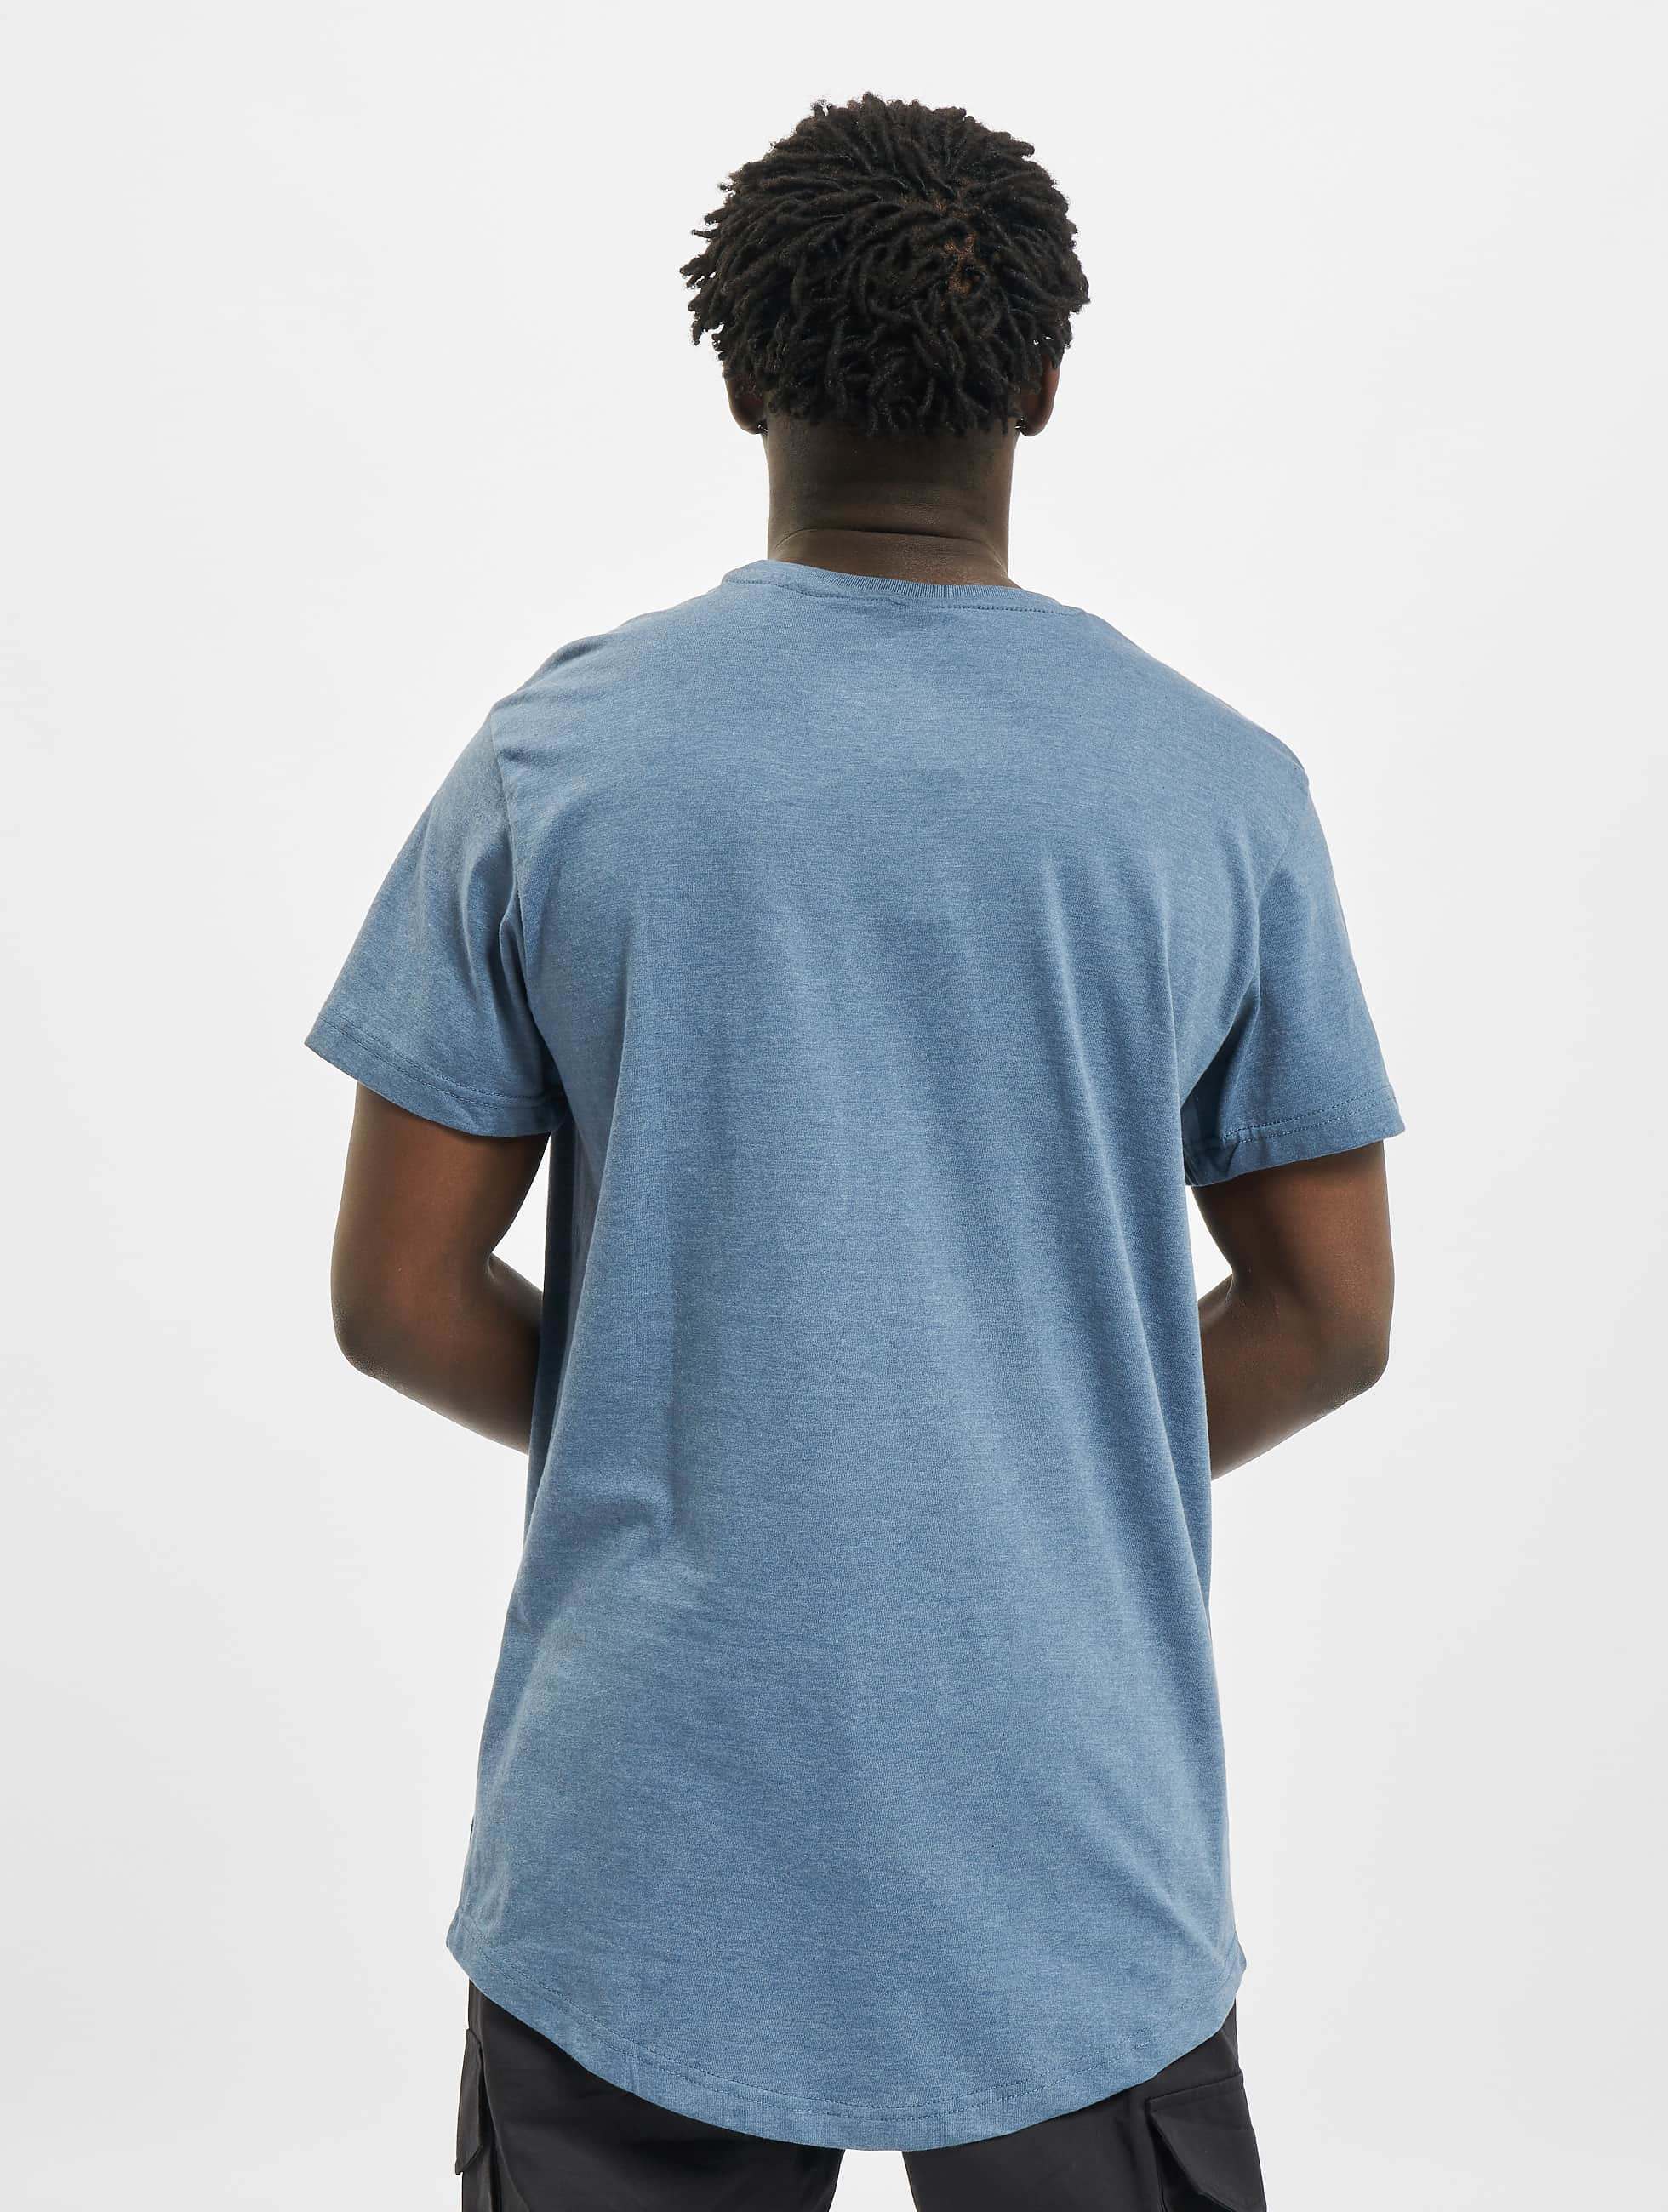 Urban Classics Tall Tees Shaped Melange Oversized Long blau